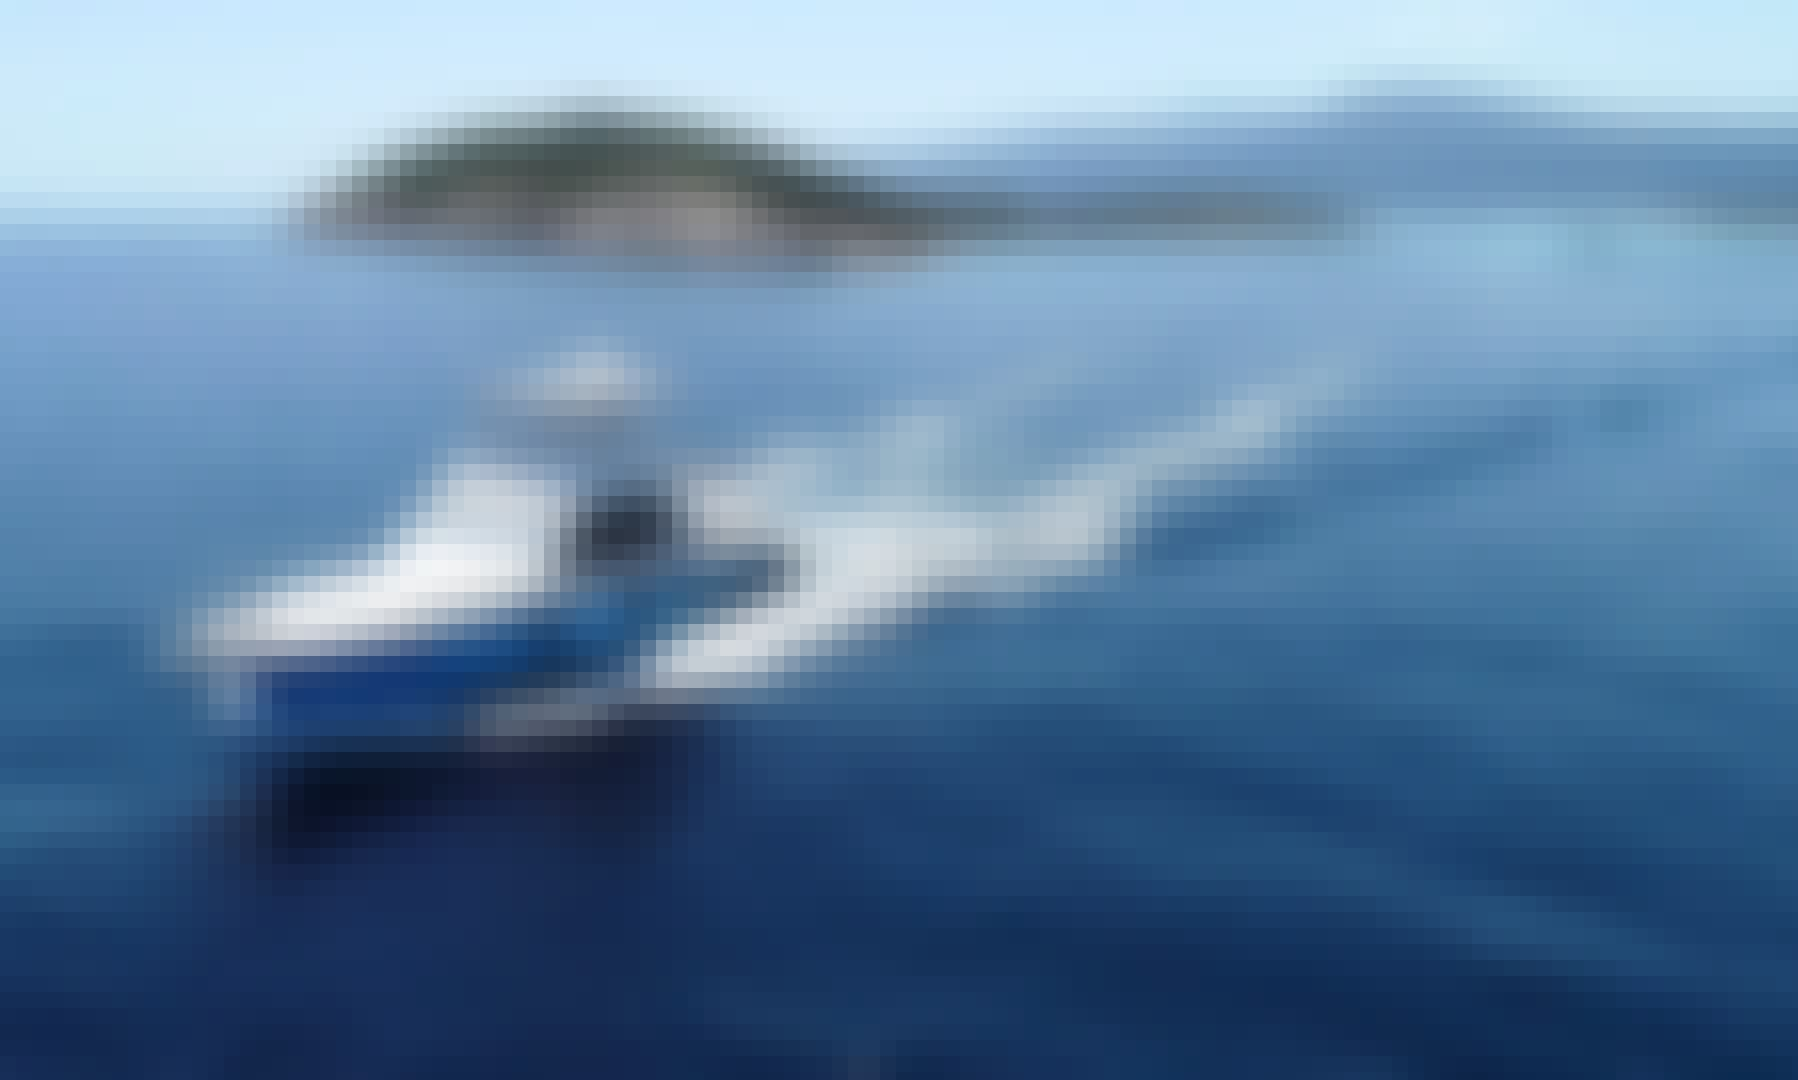 Enjoy a private cruise or a fishing trip in Halkidiki, Greece on a 50' ft Bertram Luxury Yacht